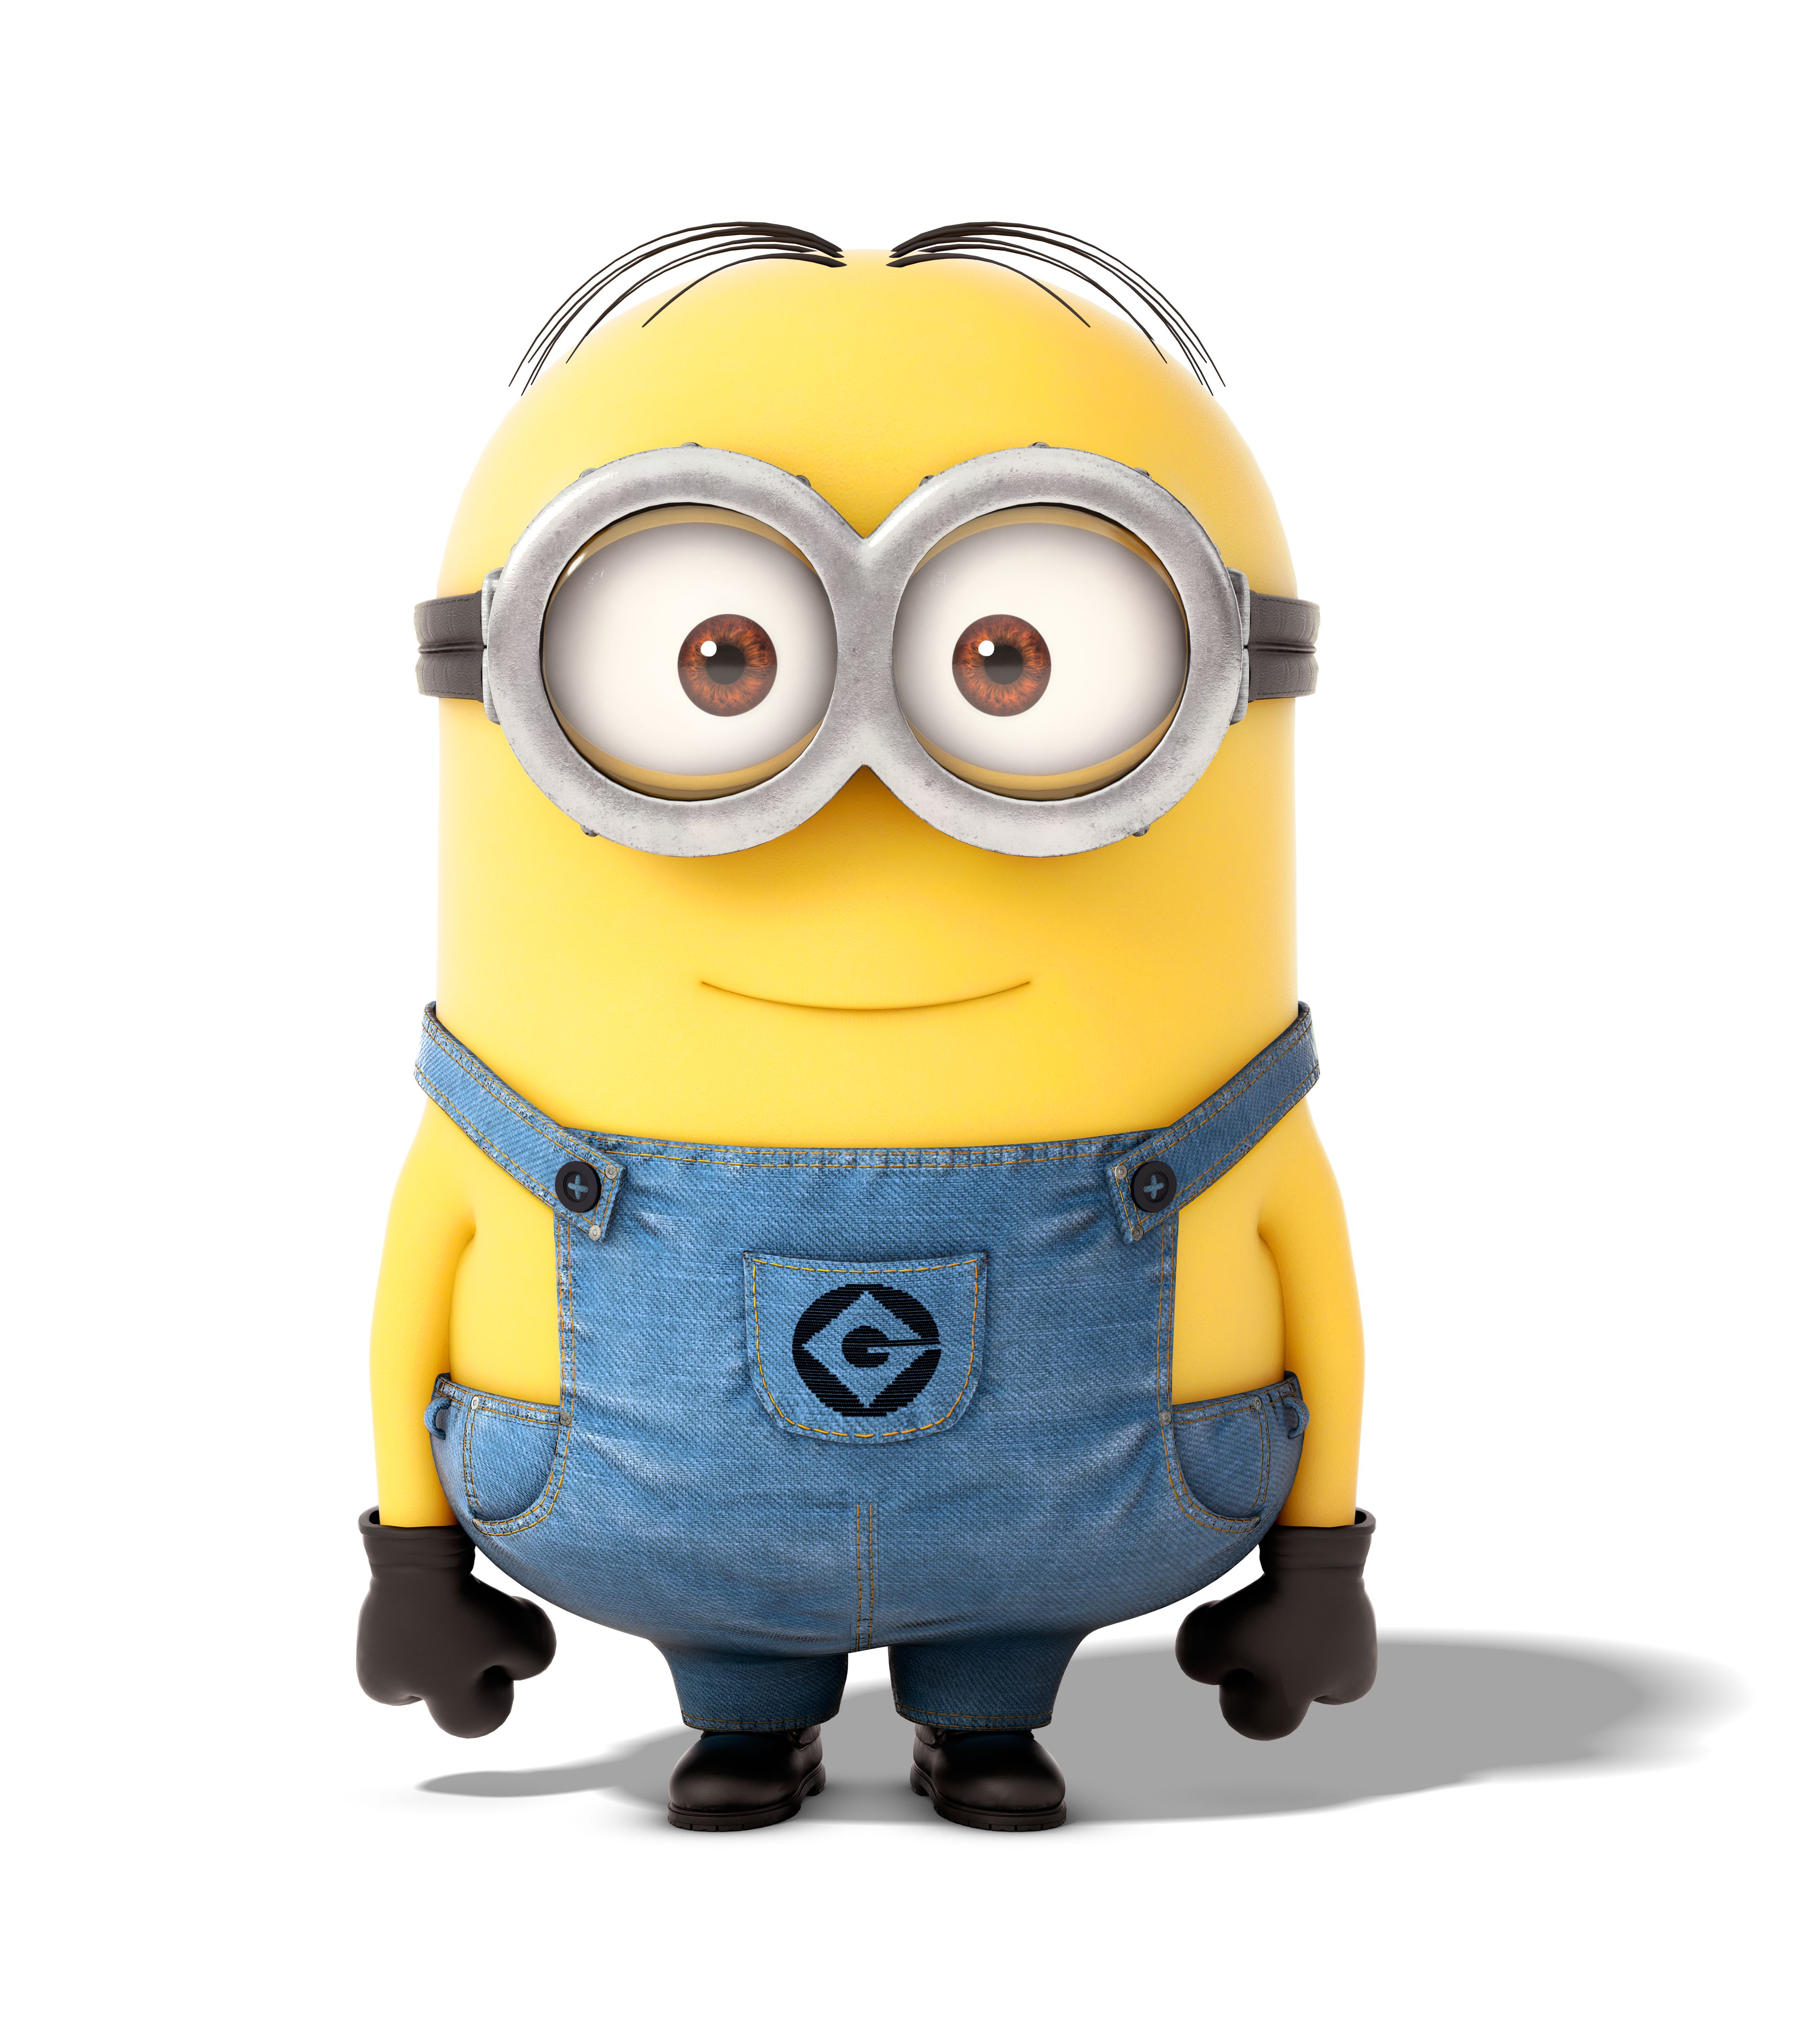 1000 images about minions on pinterest iron man the minions